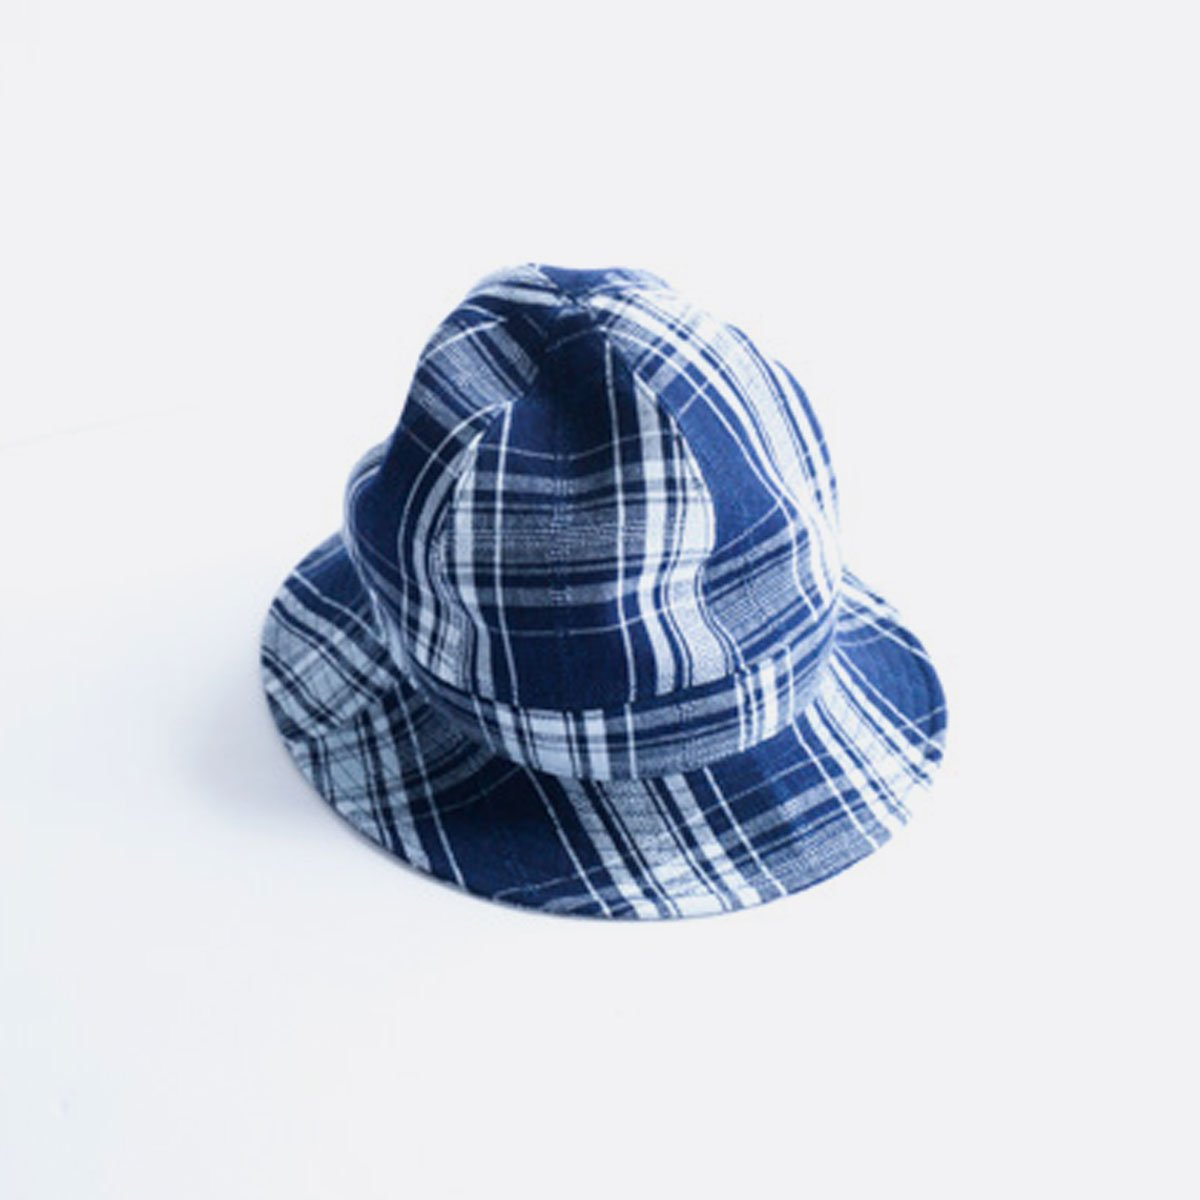 niuhans  Cotton Flannel Baseball Cap (Navy)2